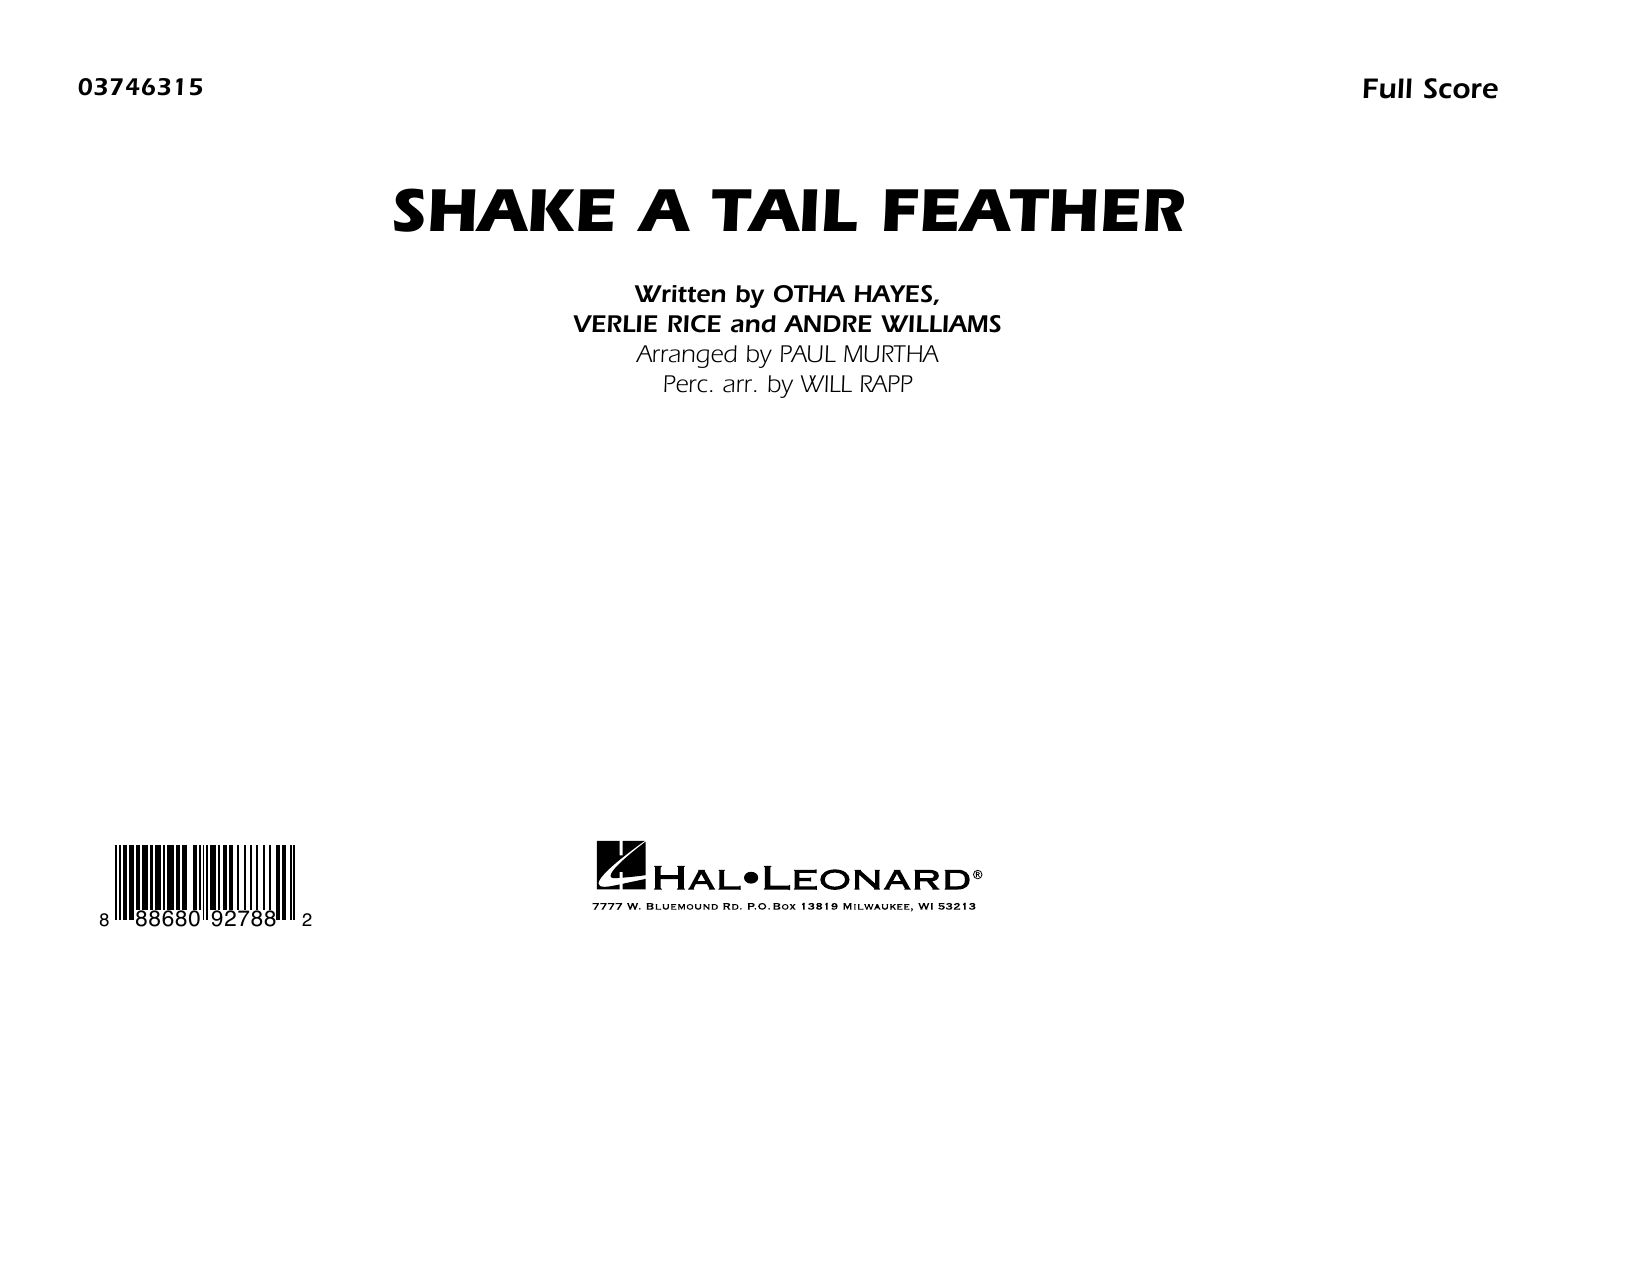 Shake a Tail Feather (arr. Paul Murtha) - Conductor Score (Full Score) (Marching Band)